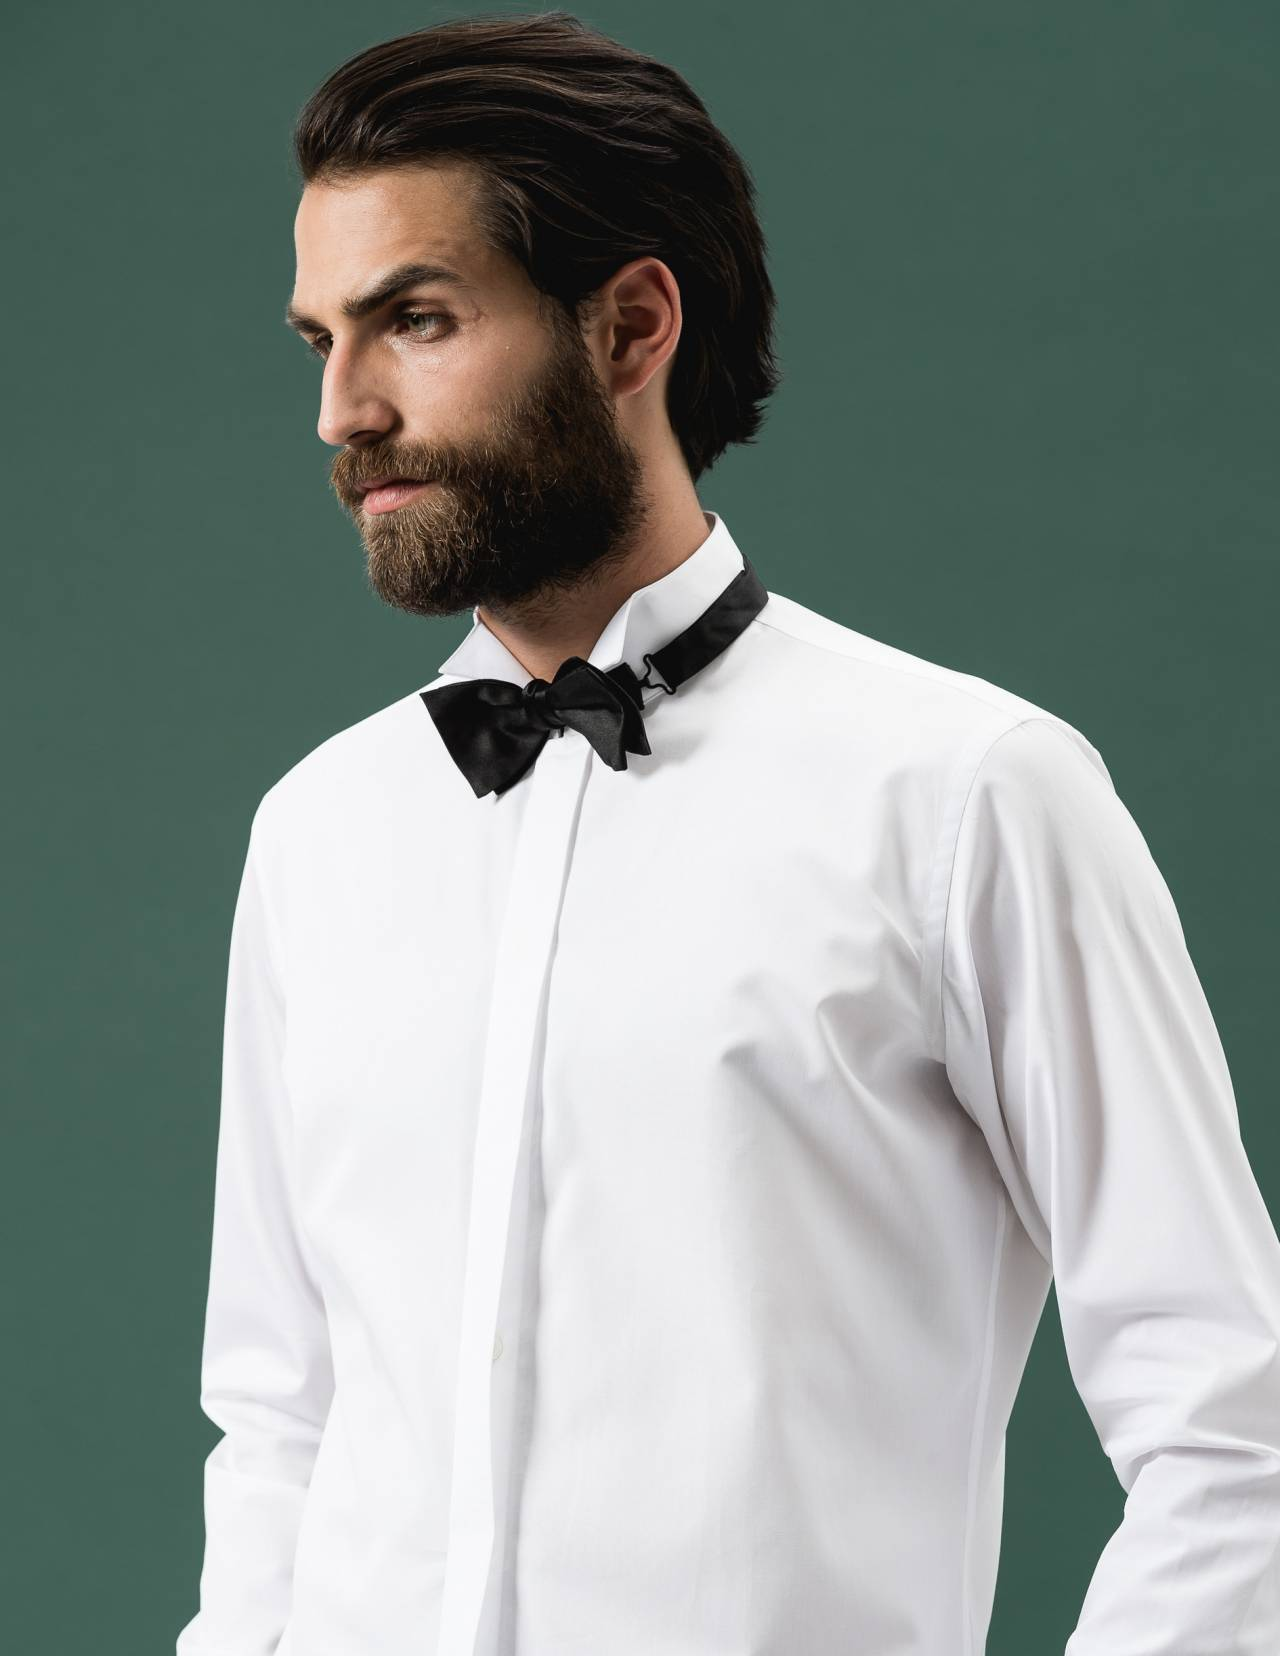 chemise-homme-ajustee-casse-blanc-uni-figaret-face-an7178910039.jpg